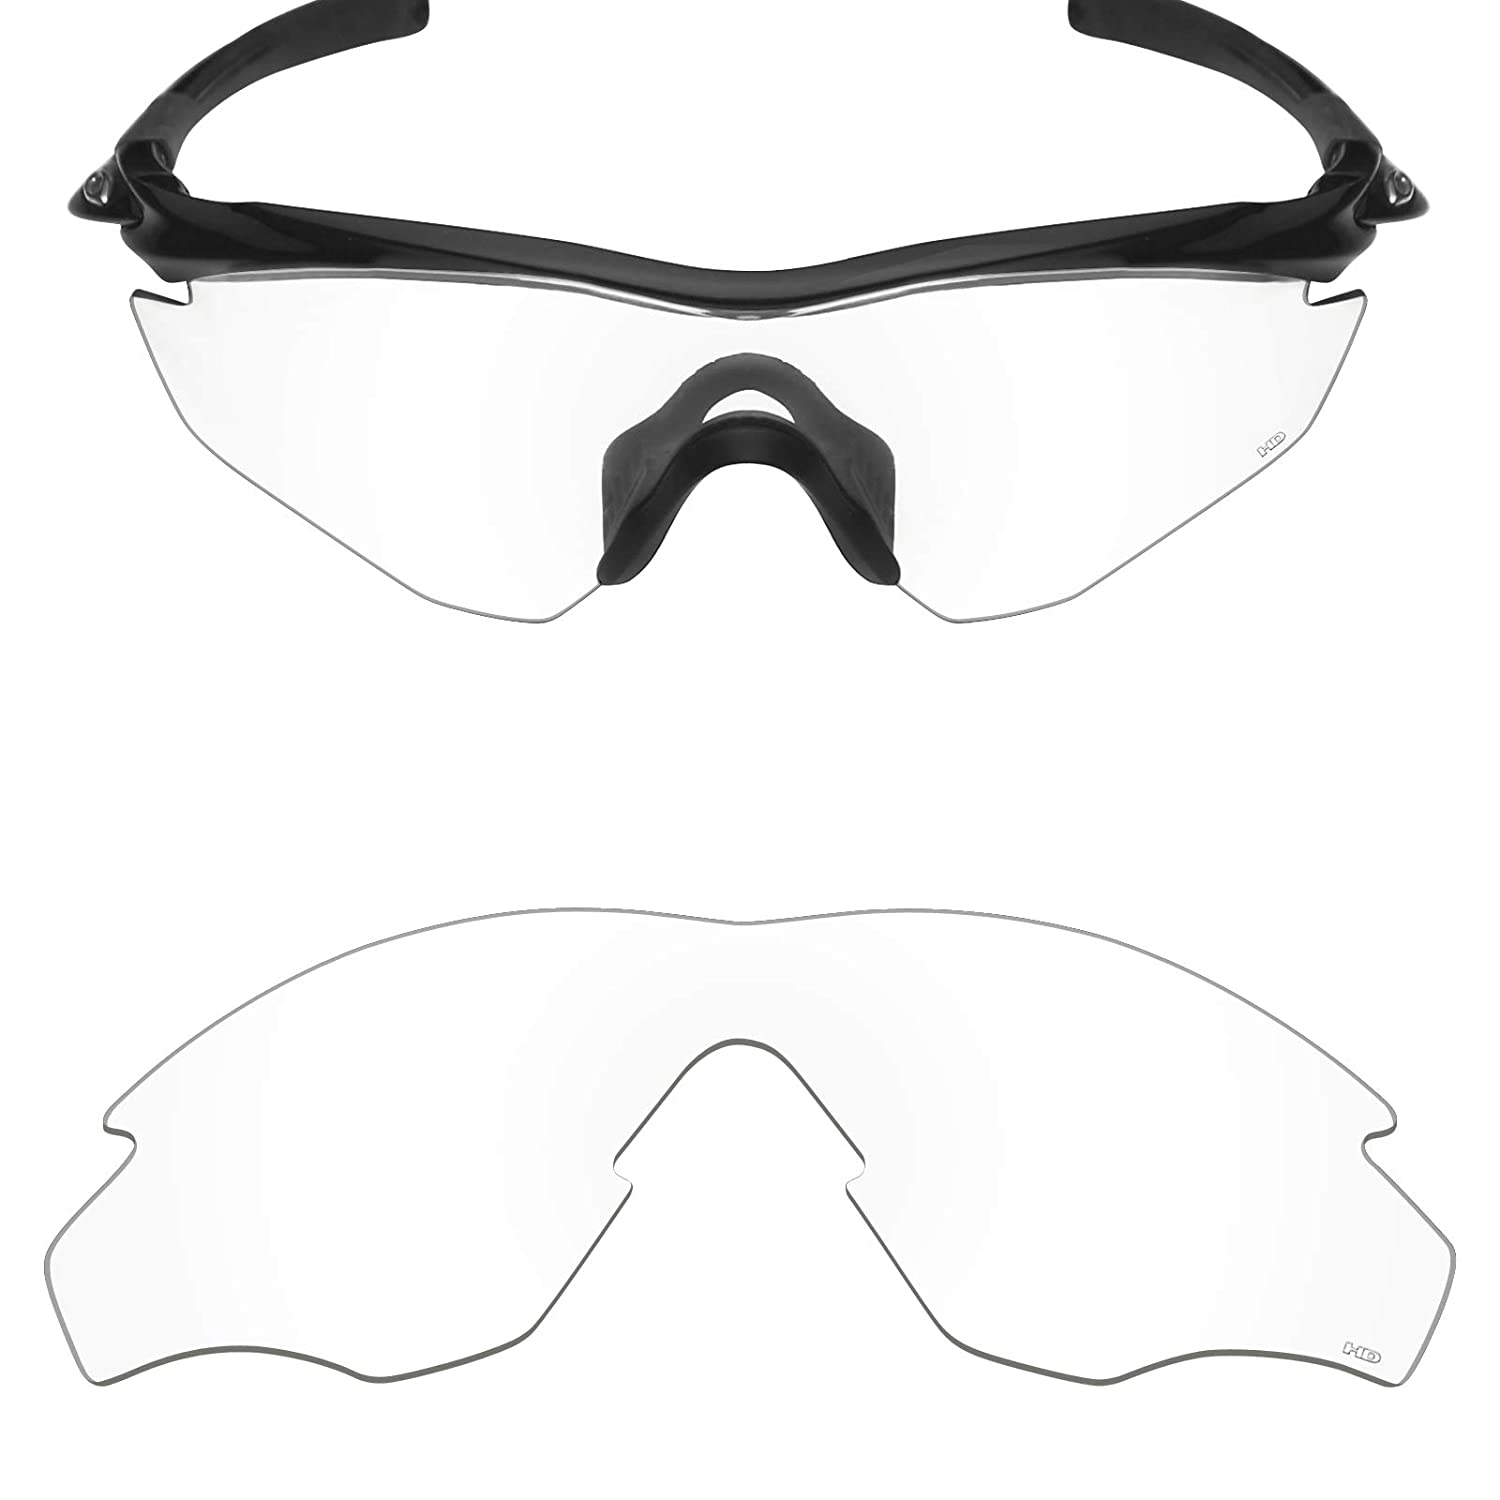 0d80c057edb Amazon.com  Mryok+ Polarized Replacement Lenses for Oakley M2 Frame   M2  Frame XL - HD Clear  Clothing